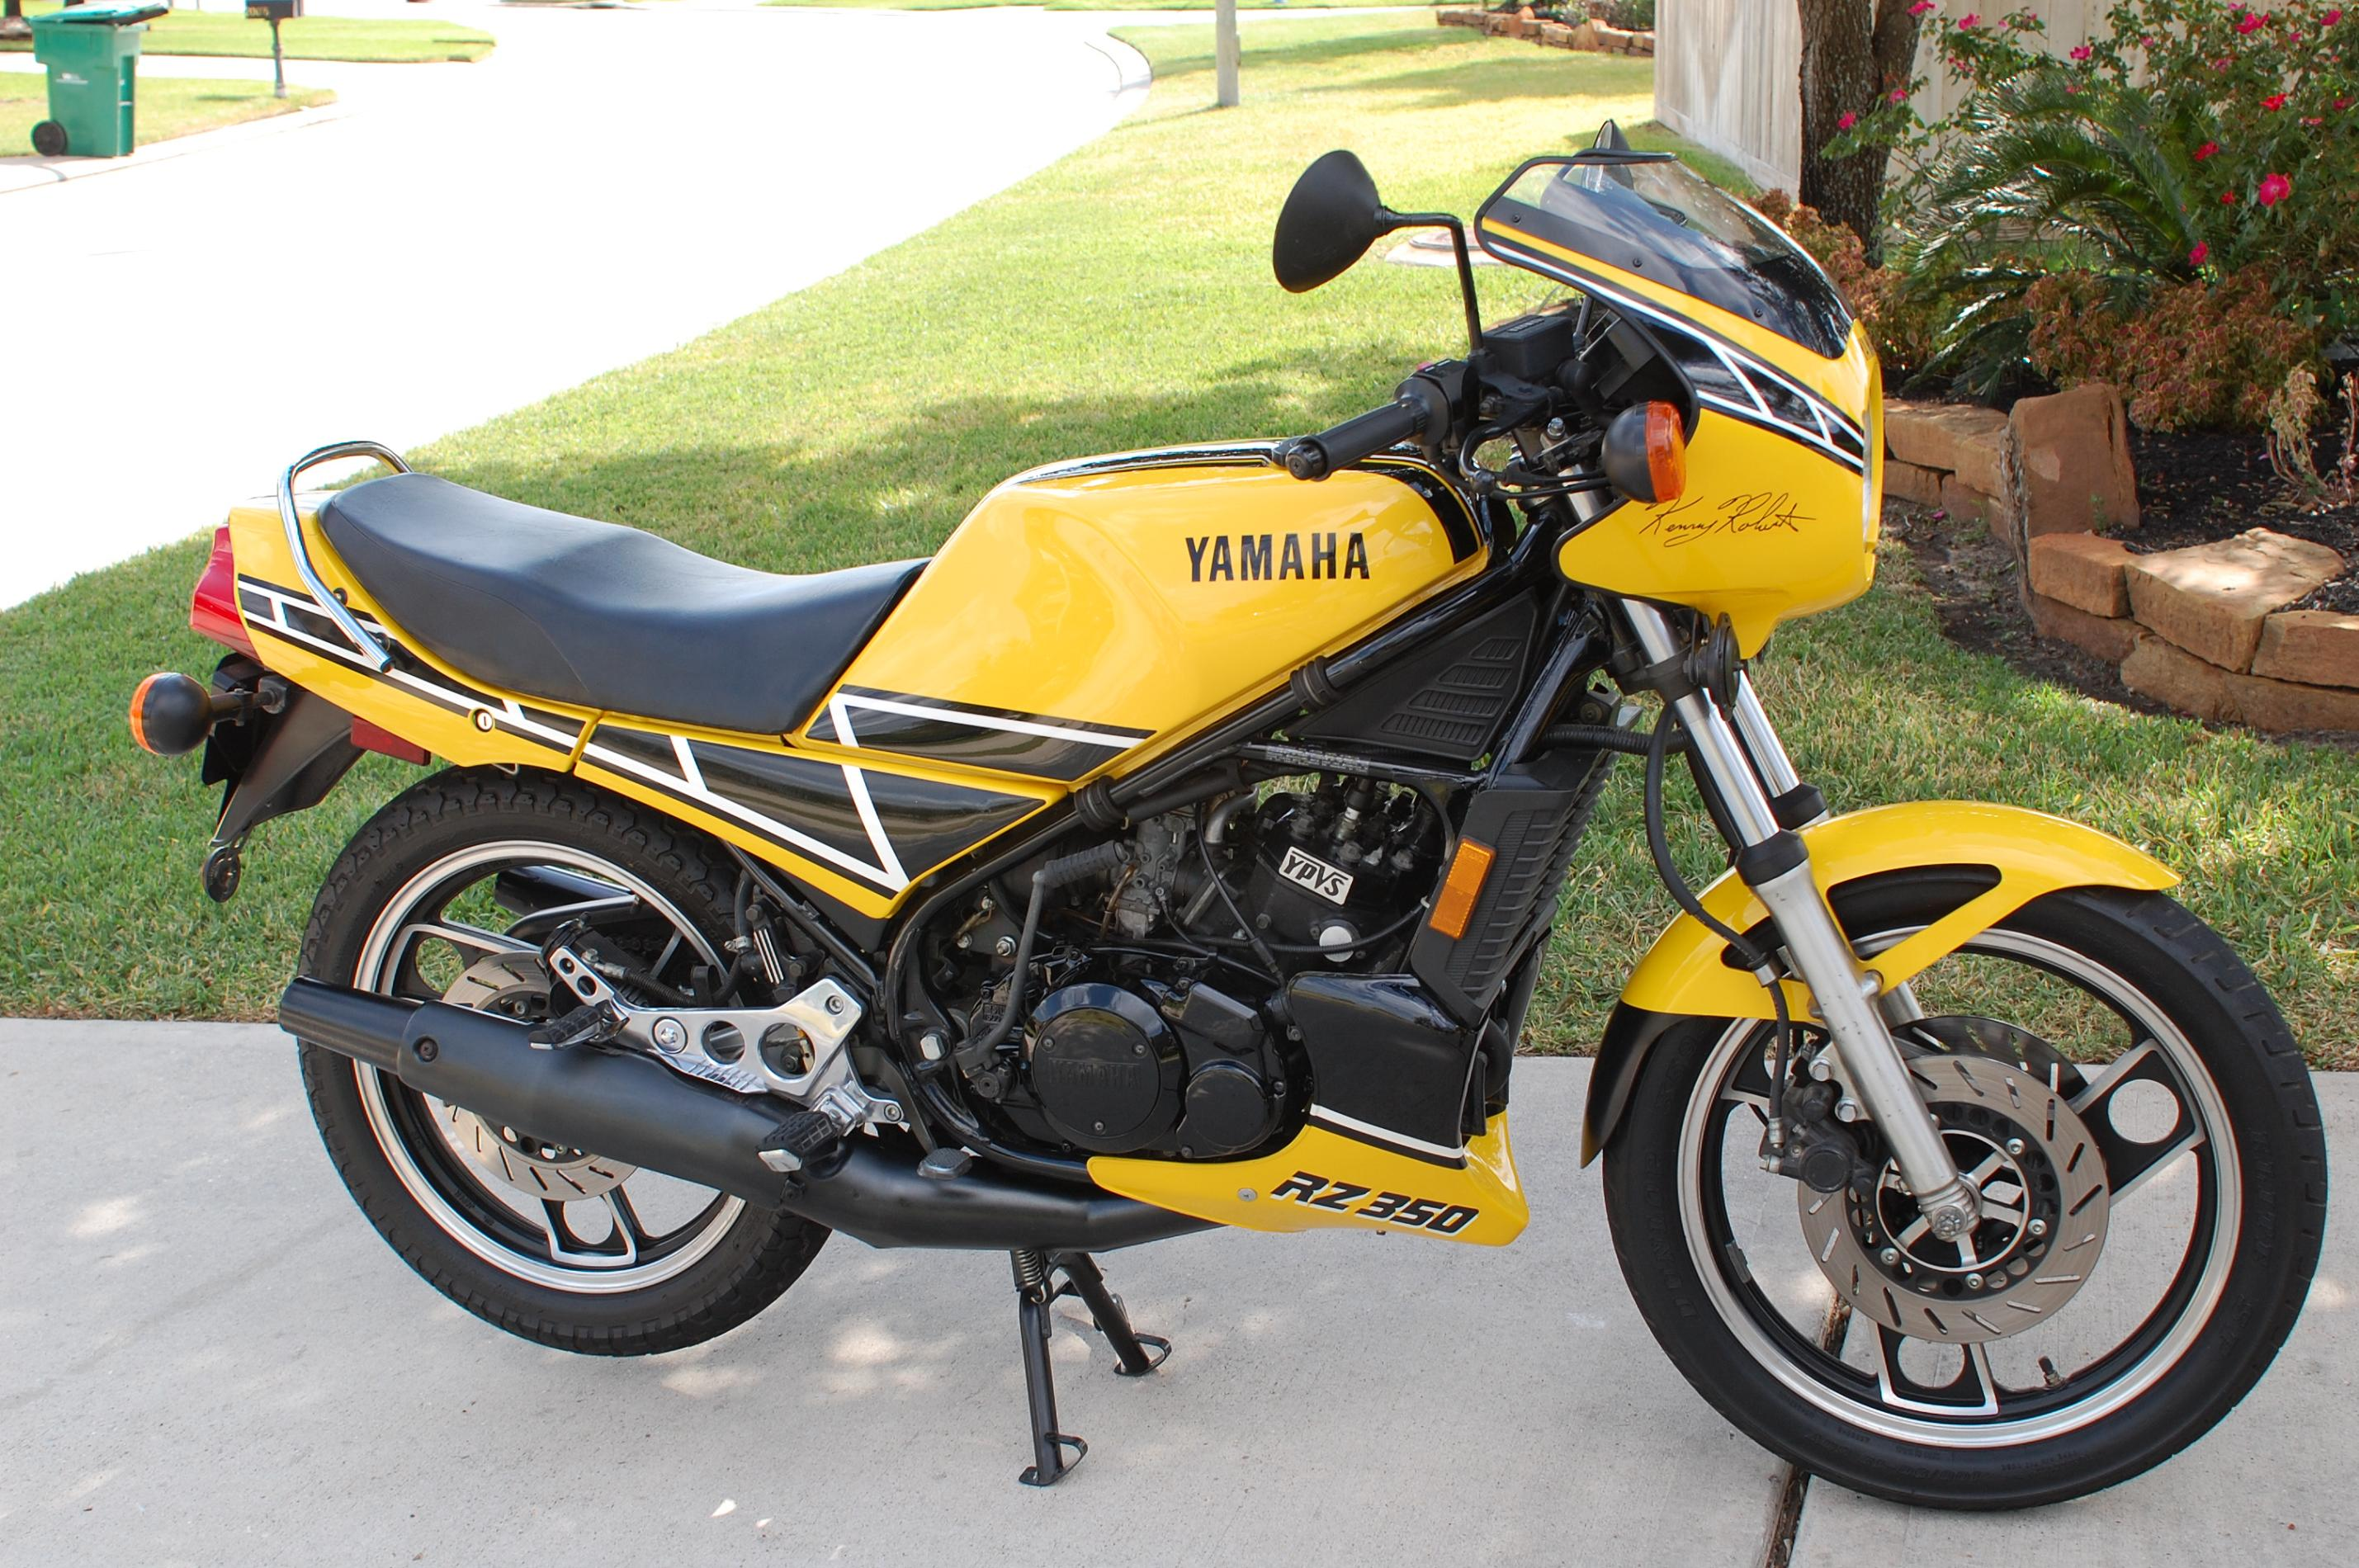 Rz350 1a rare sportbikes for sale for Yamaha rz for sale